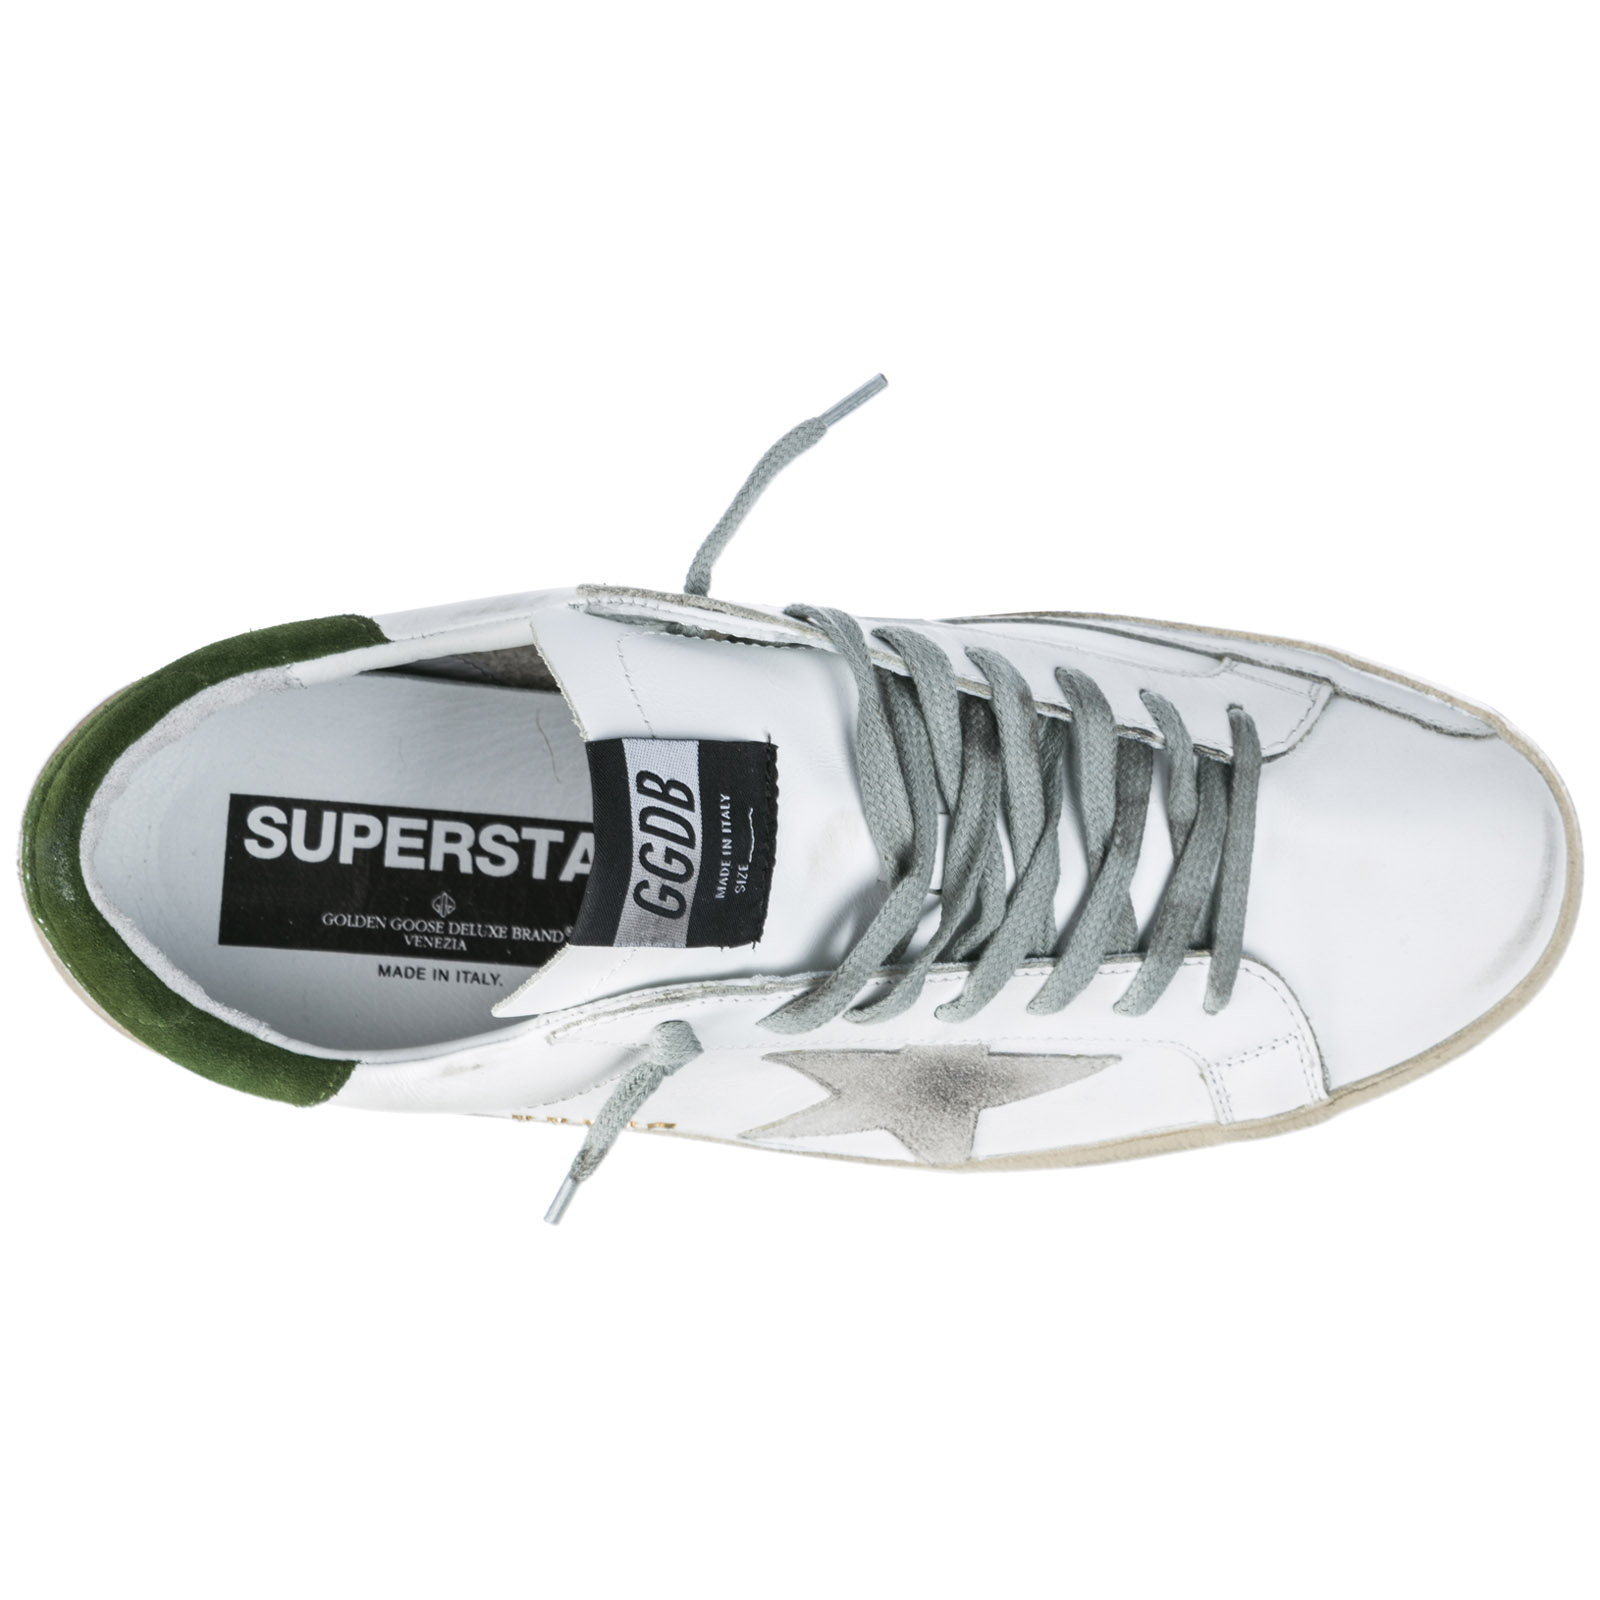 Men's shoes leather trainers sneakers superstar